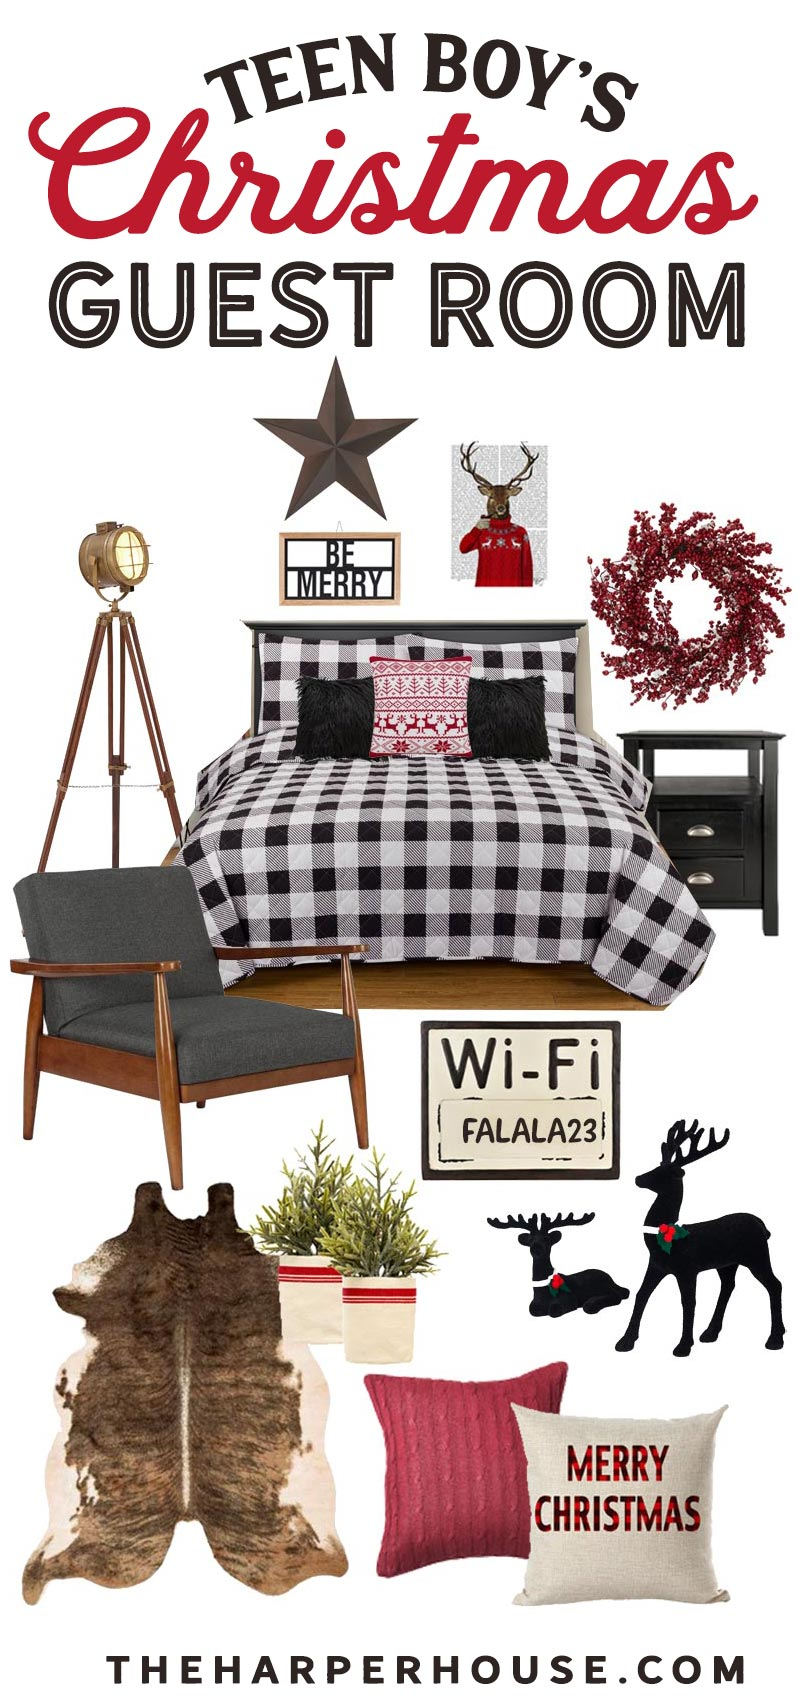 Christmas decor to decorate your teen boy's bedroom.